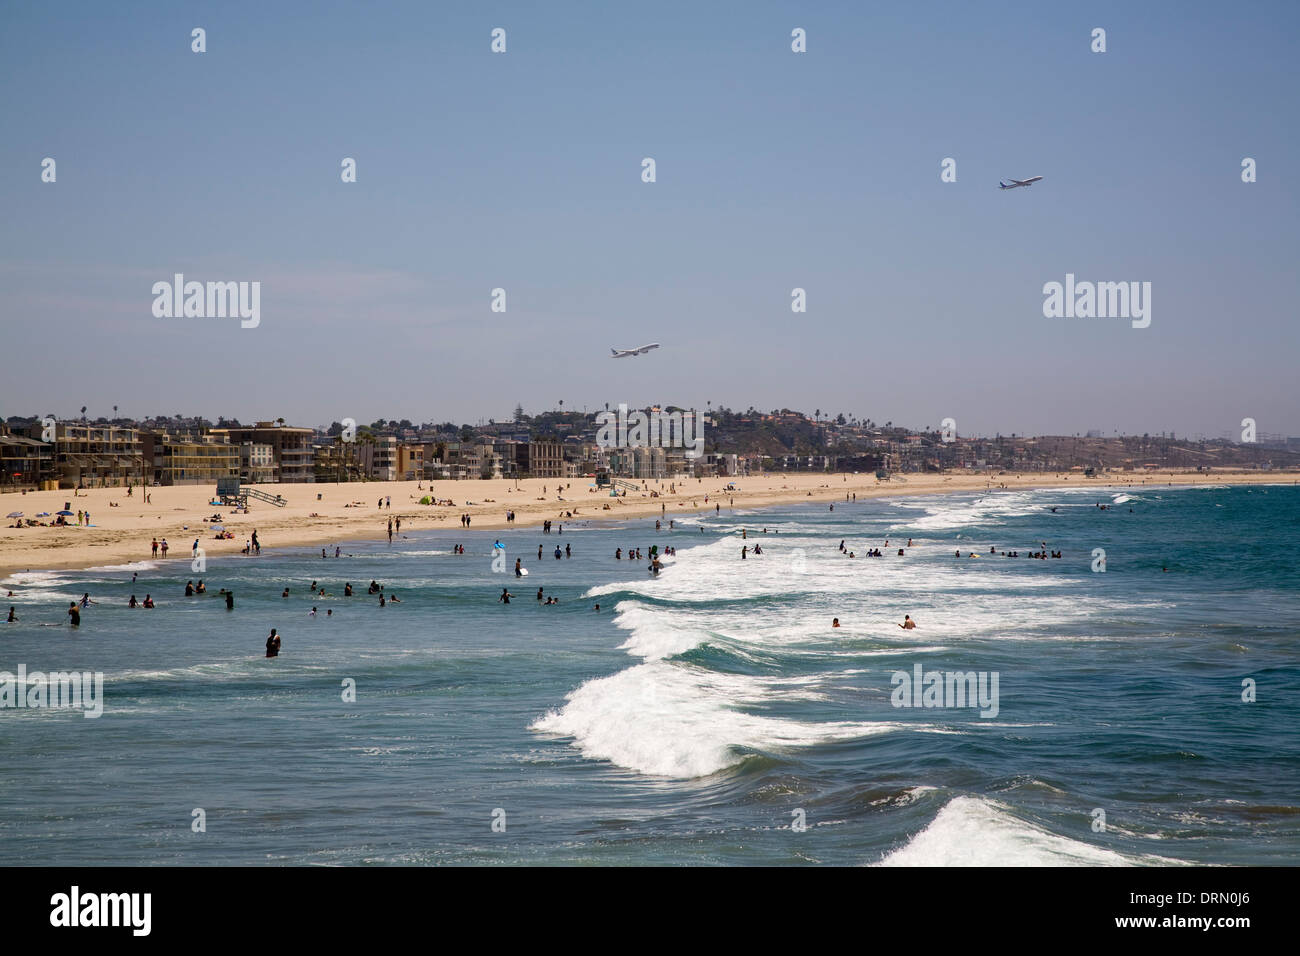 Venice Beach with LAX in background, Los Angeles, CA, California - Stock Image